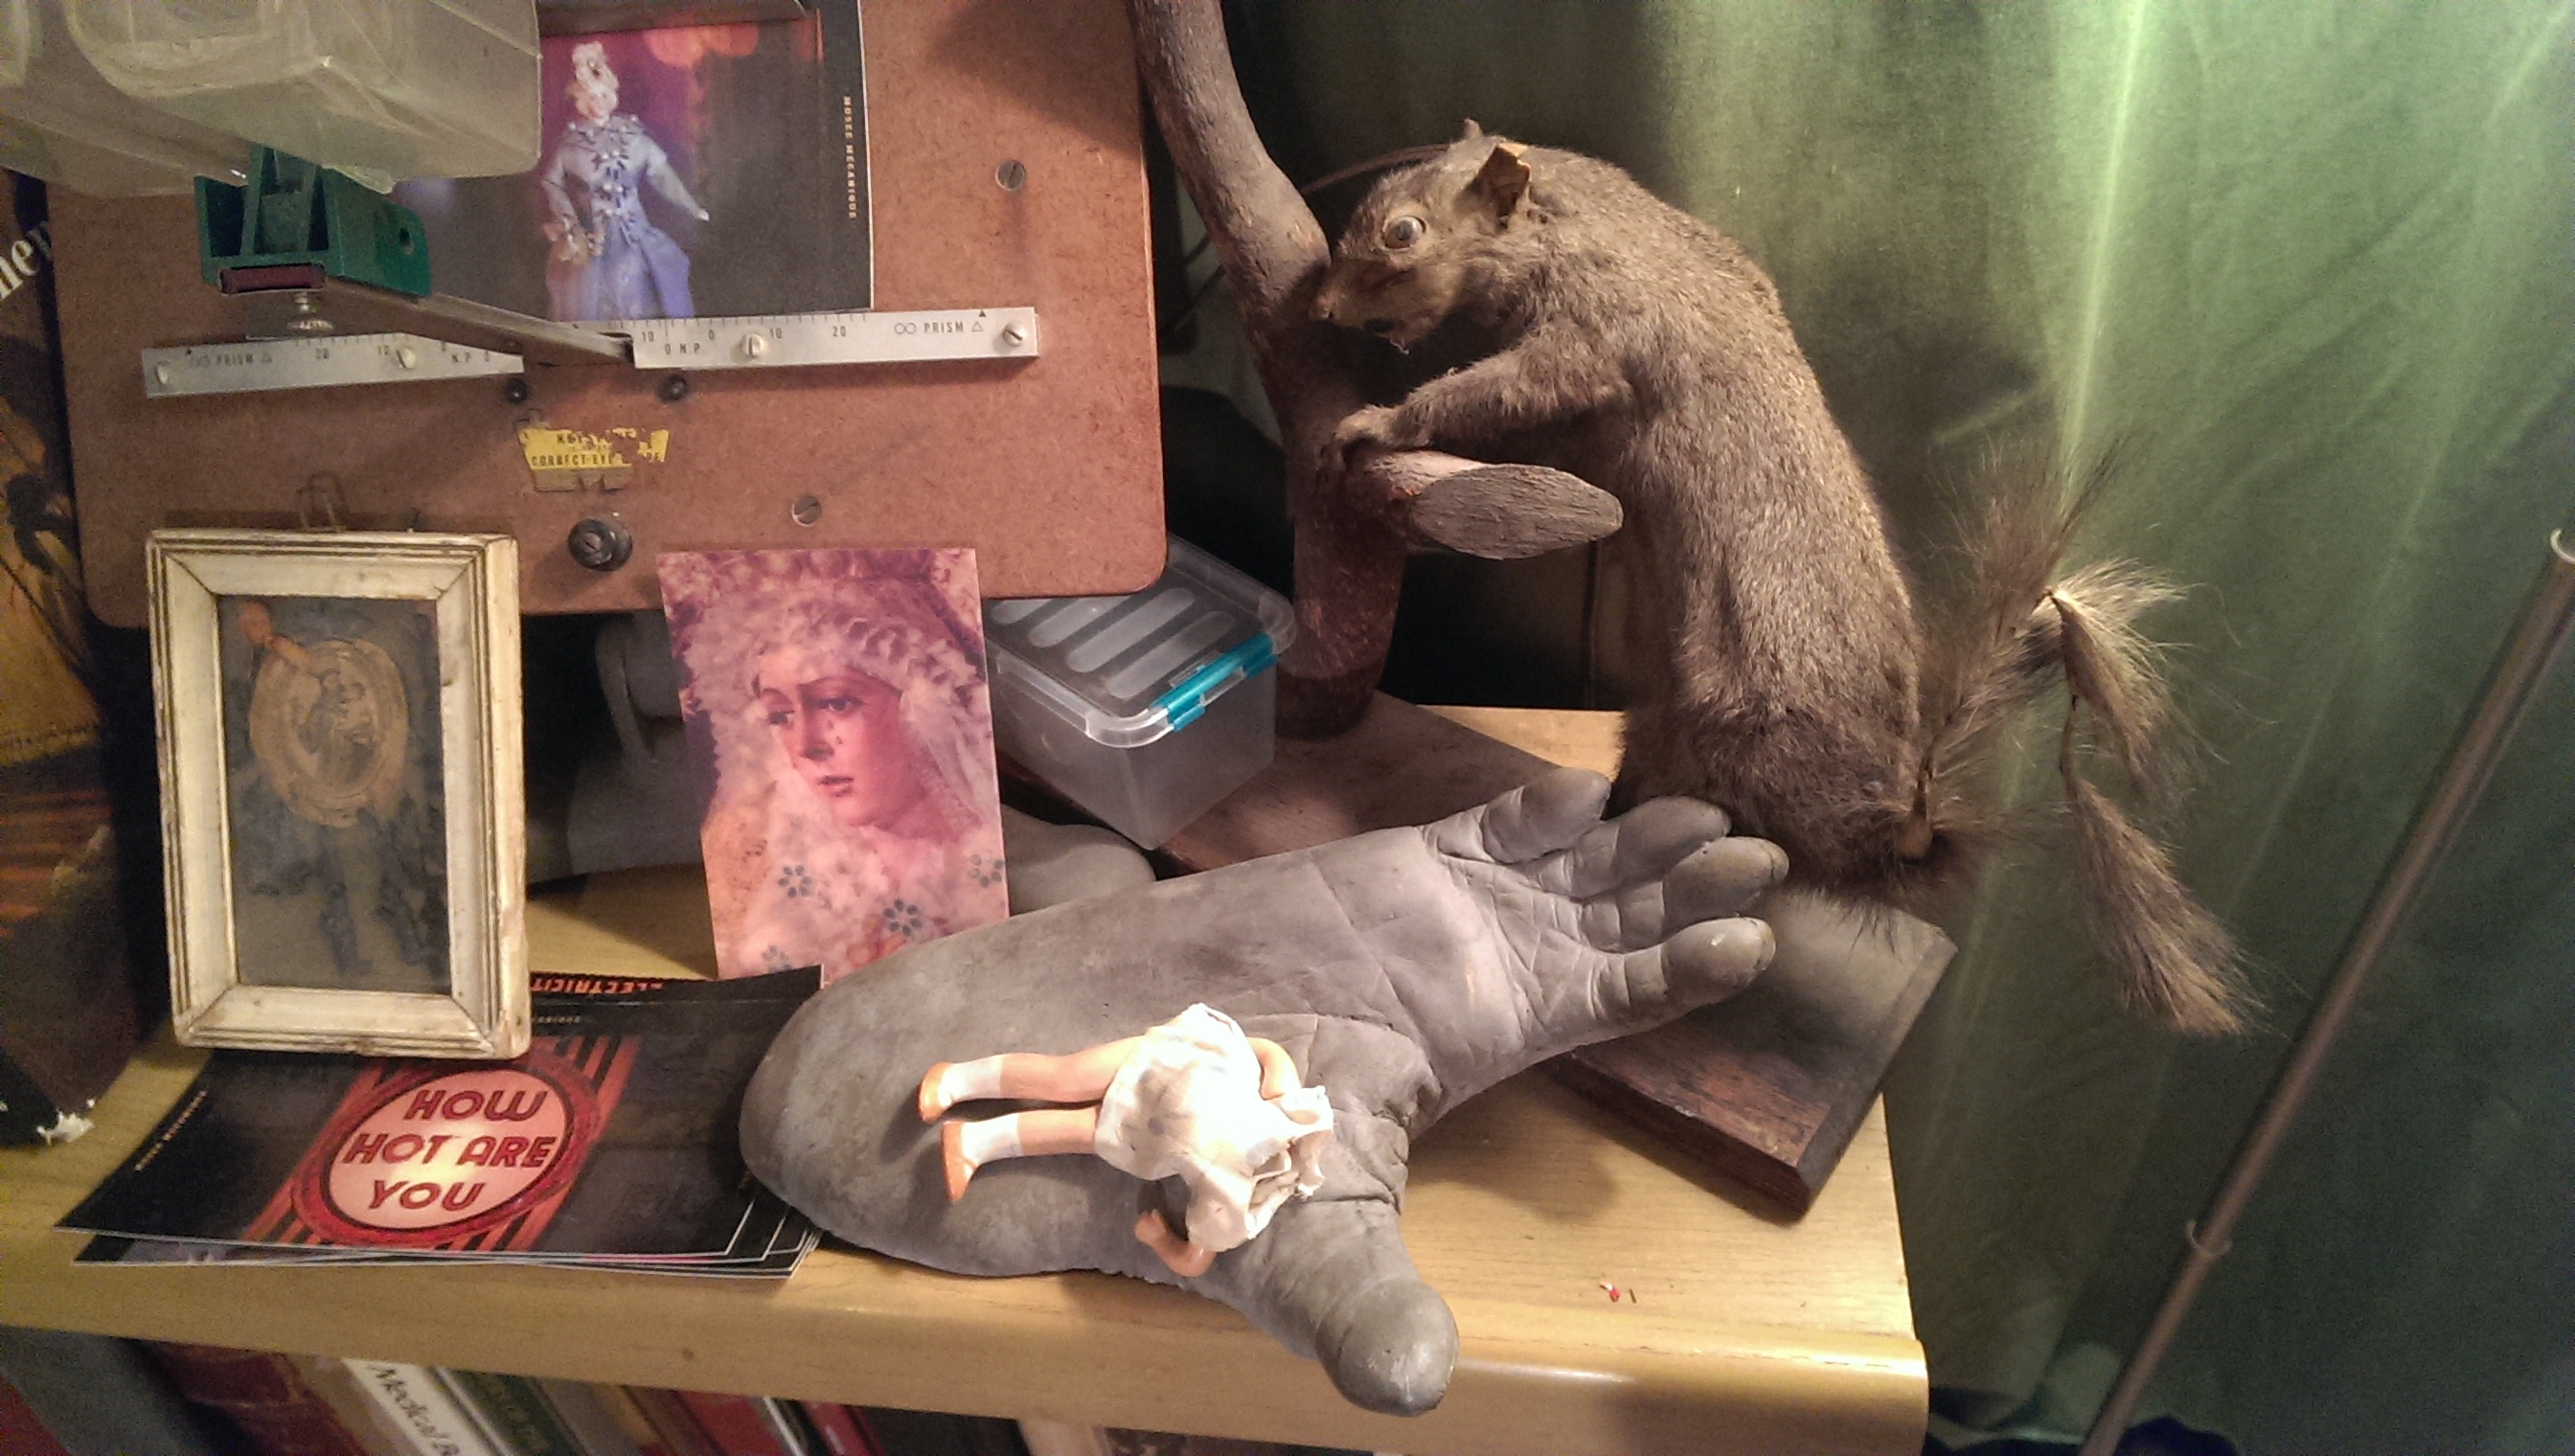 Artifacts from the Morbid Anatomy Library in Brooklyn.